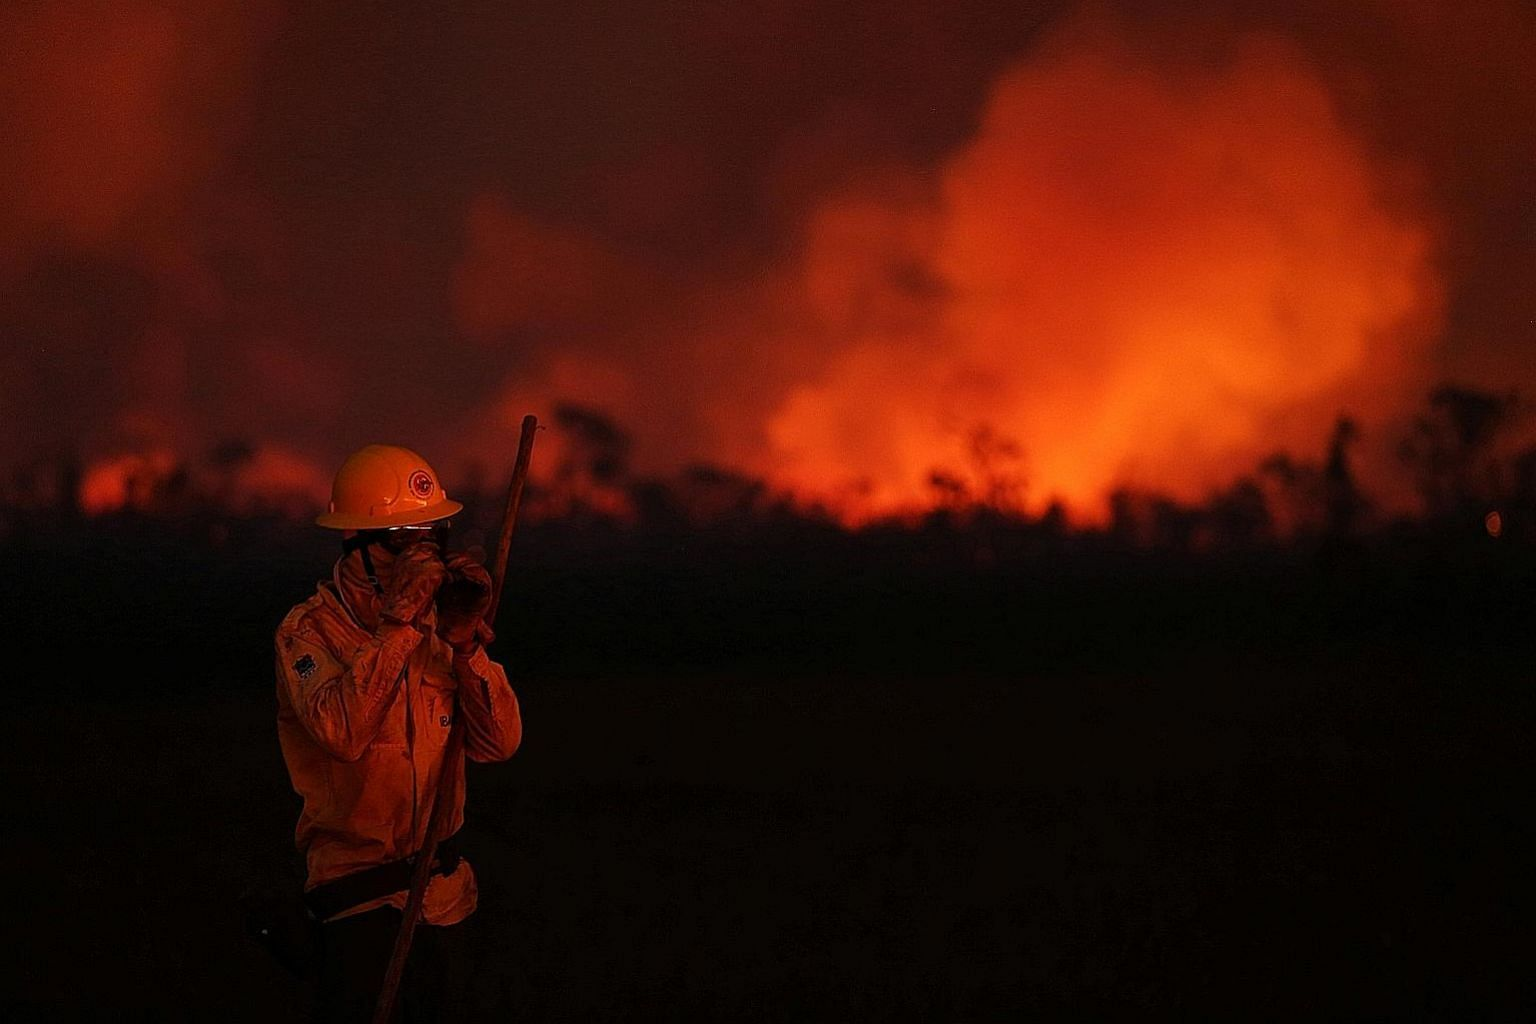 A Brazilian firefighter at the scene of a blaze in the country's Amazonas state earlier this month. As of Saturday, Brazil has recorded 142,248 fires since the start of this year, with over 51,000 occurring during the first 28 days of this month, acc